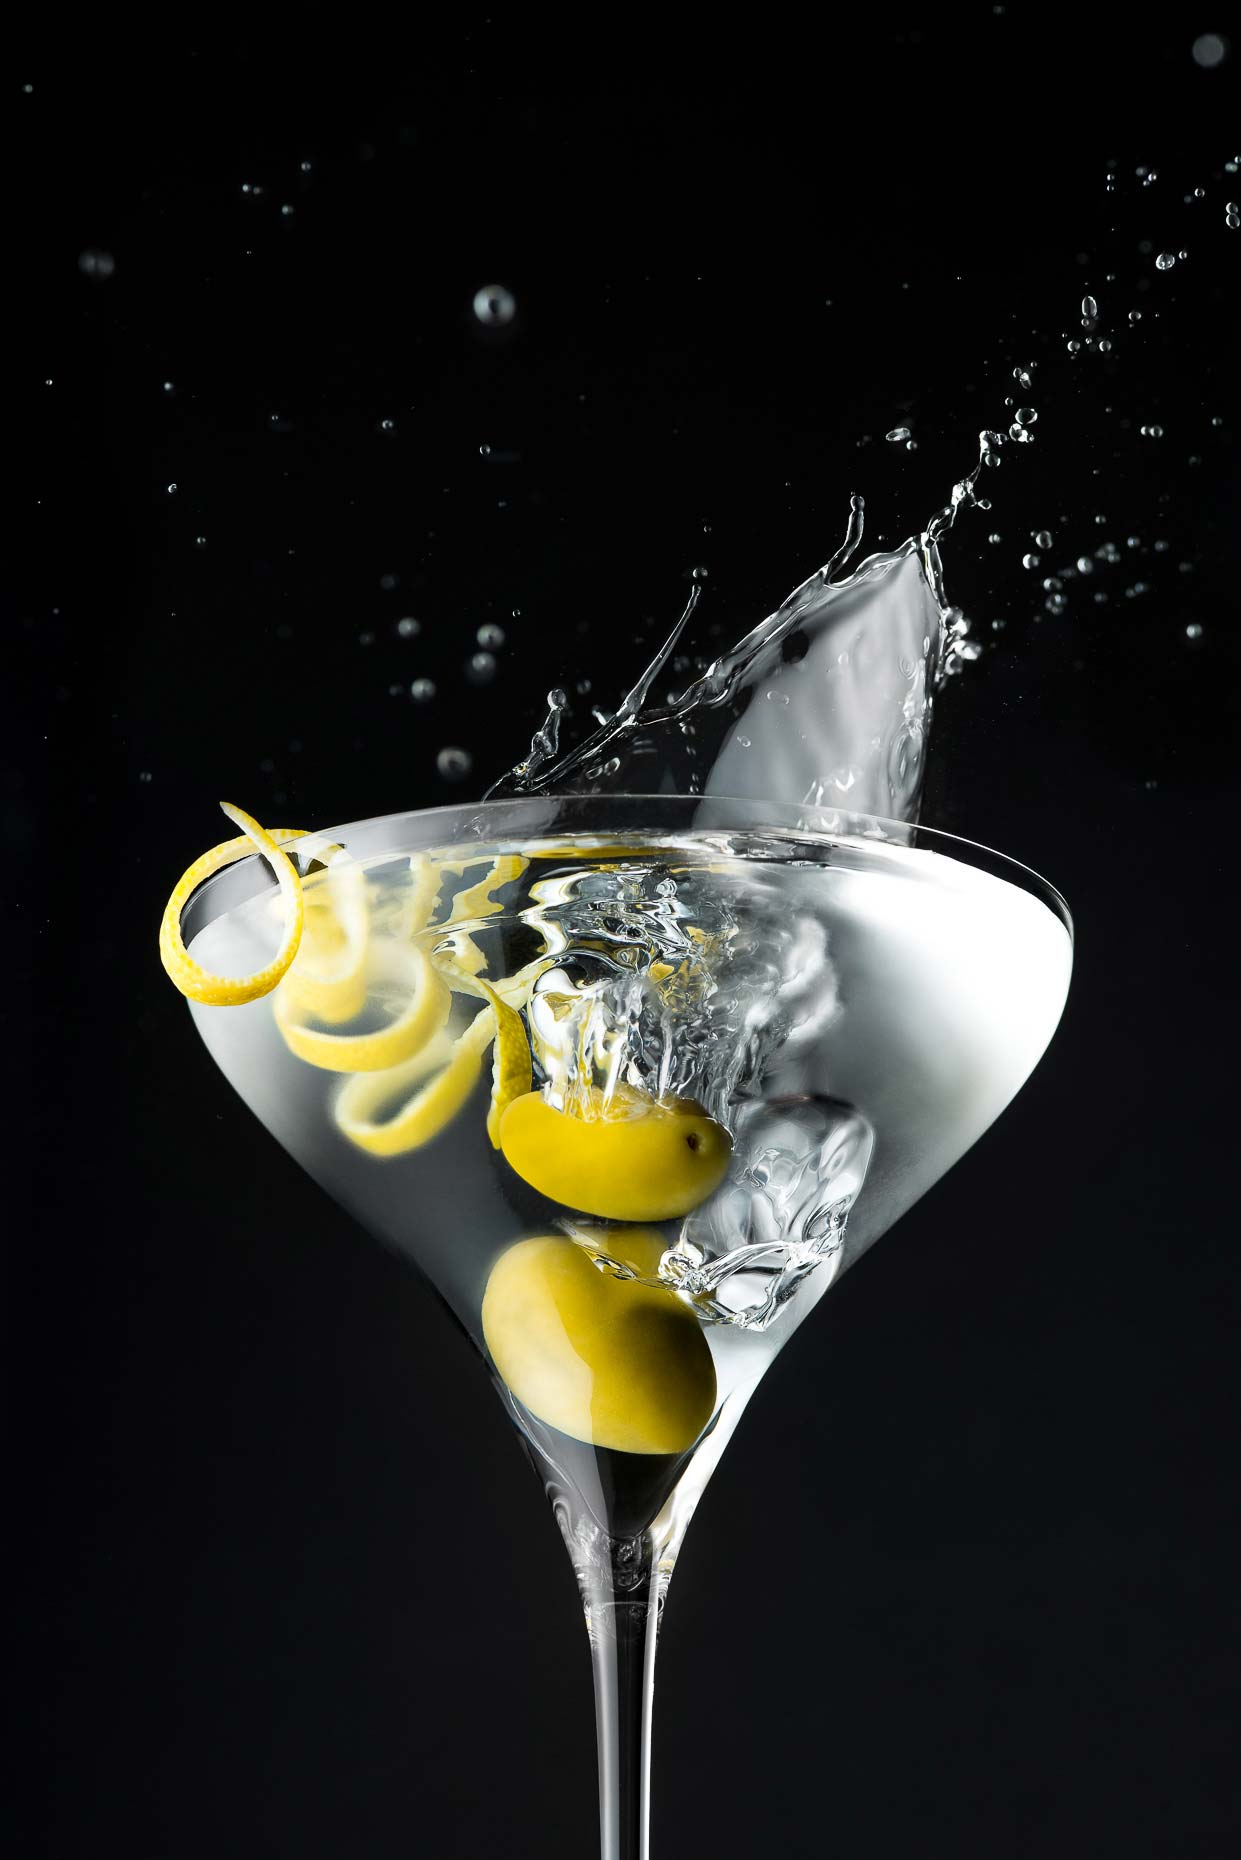 Martini Glass with Spiral Lemon Peel